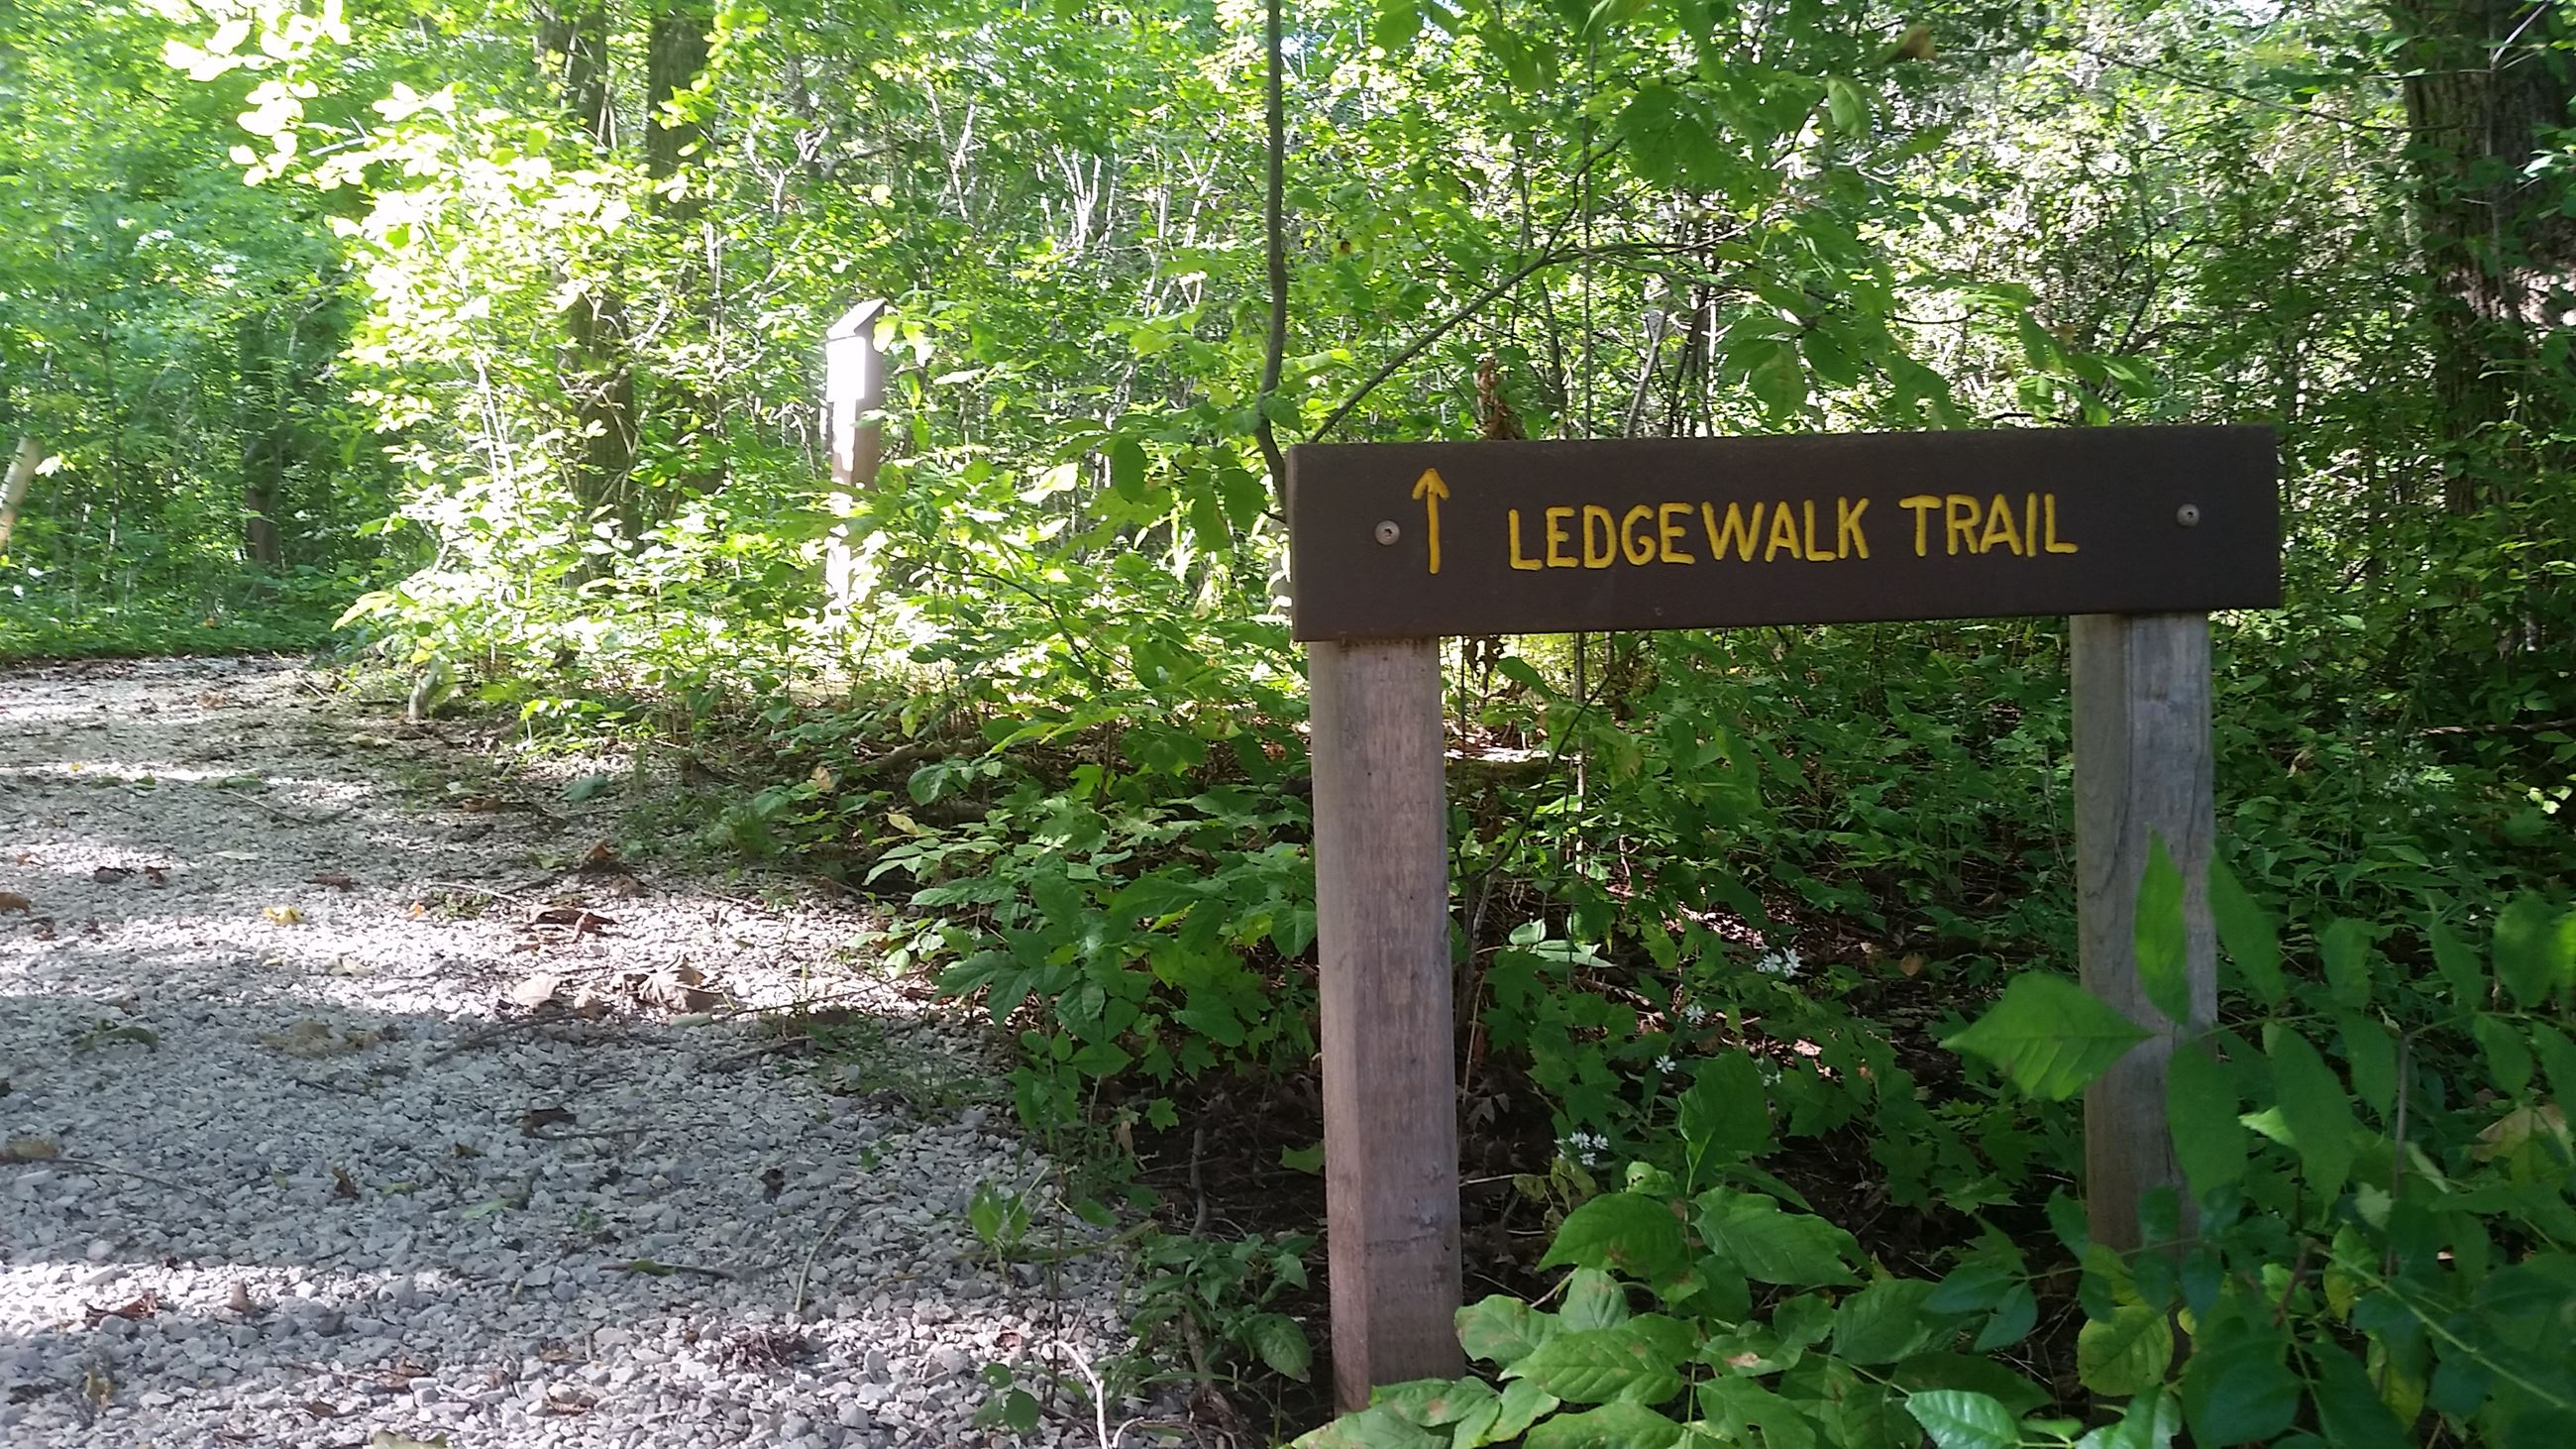 Ledgewalk trail sign in woods.